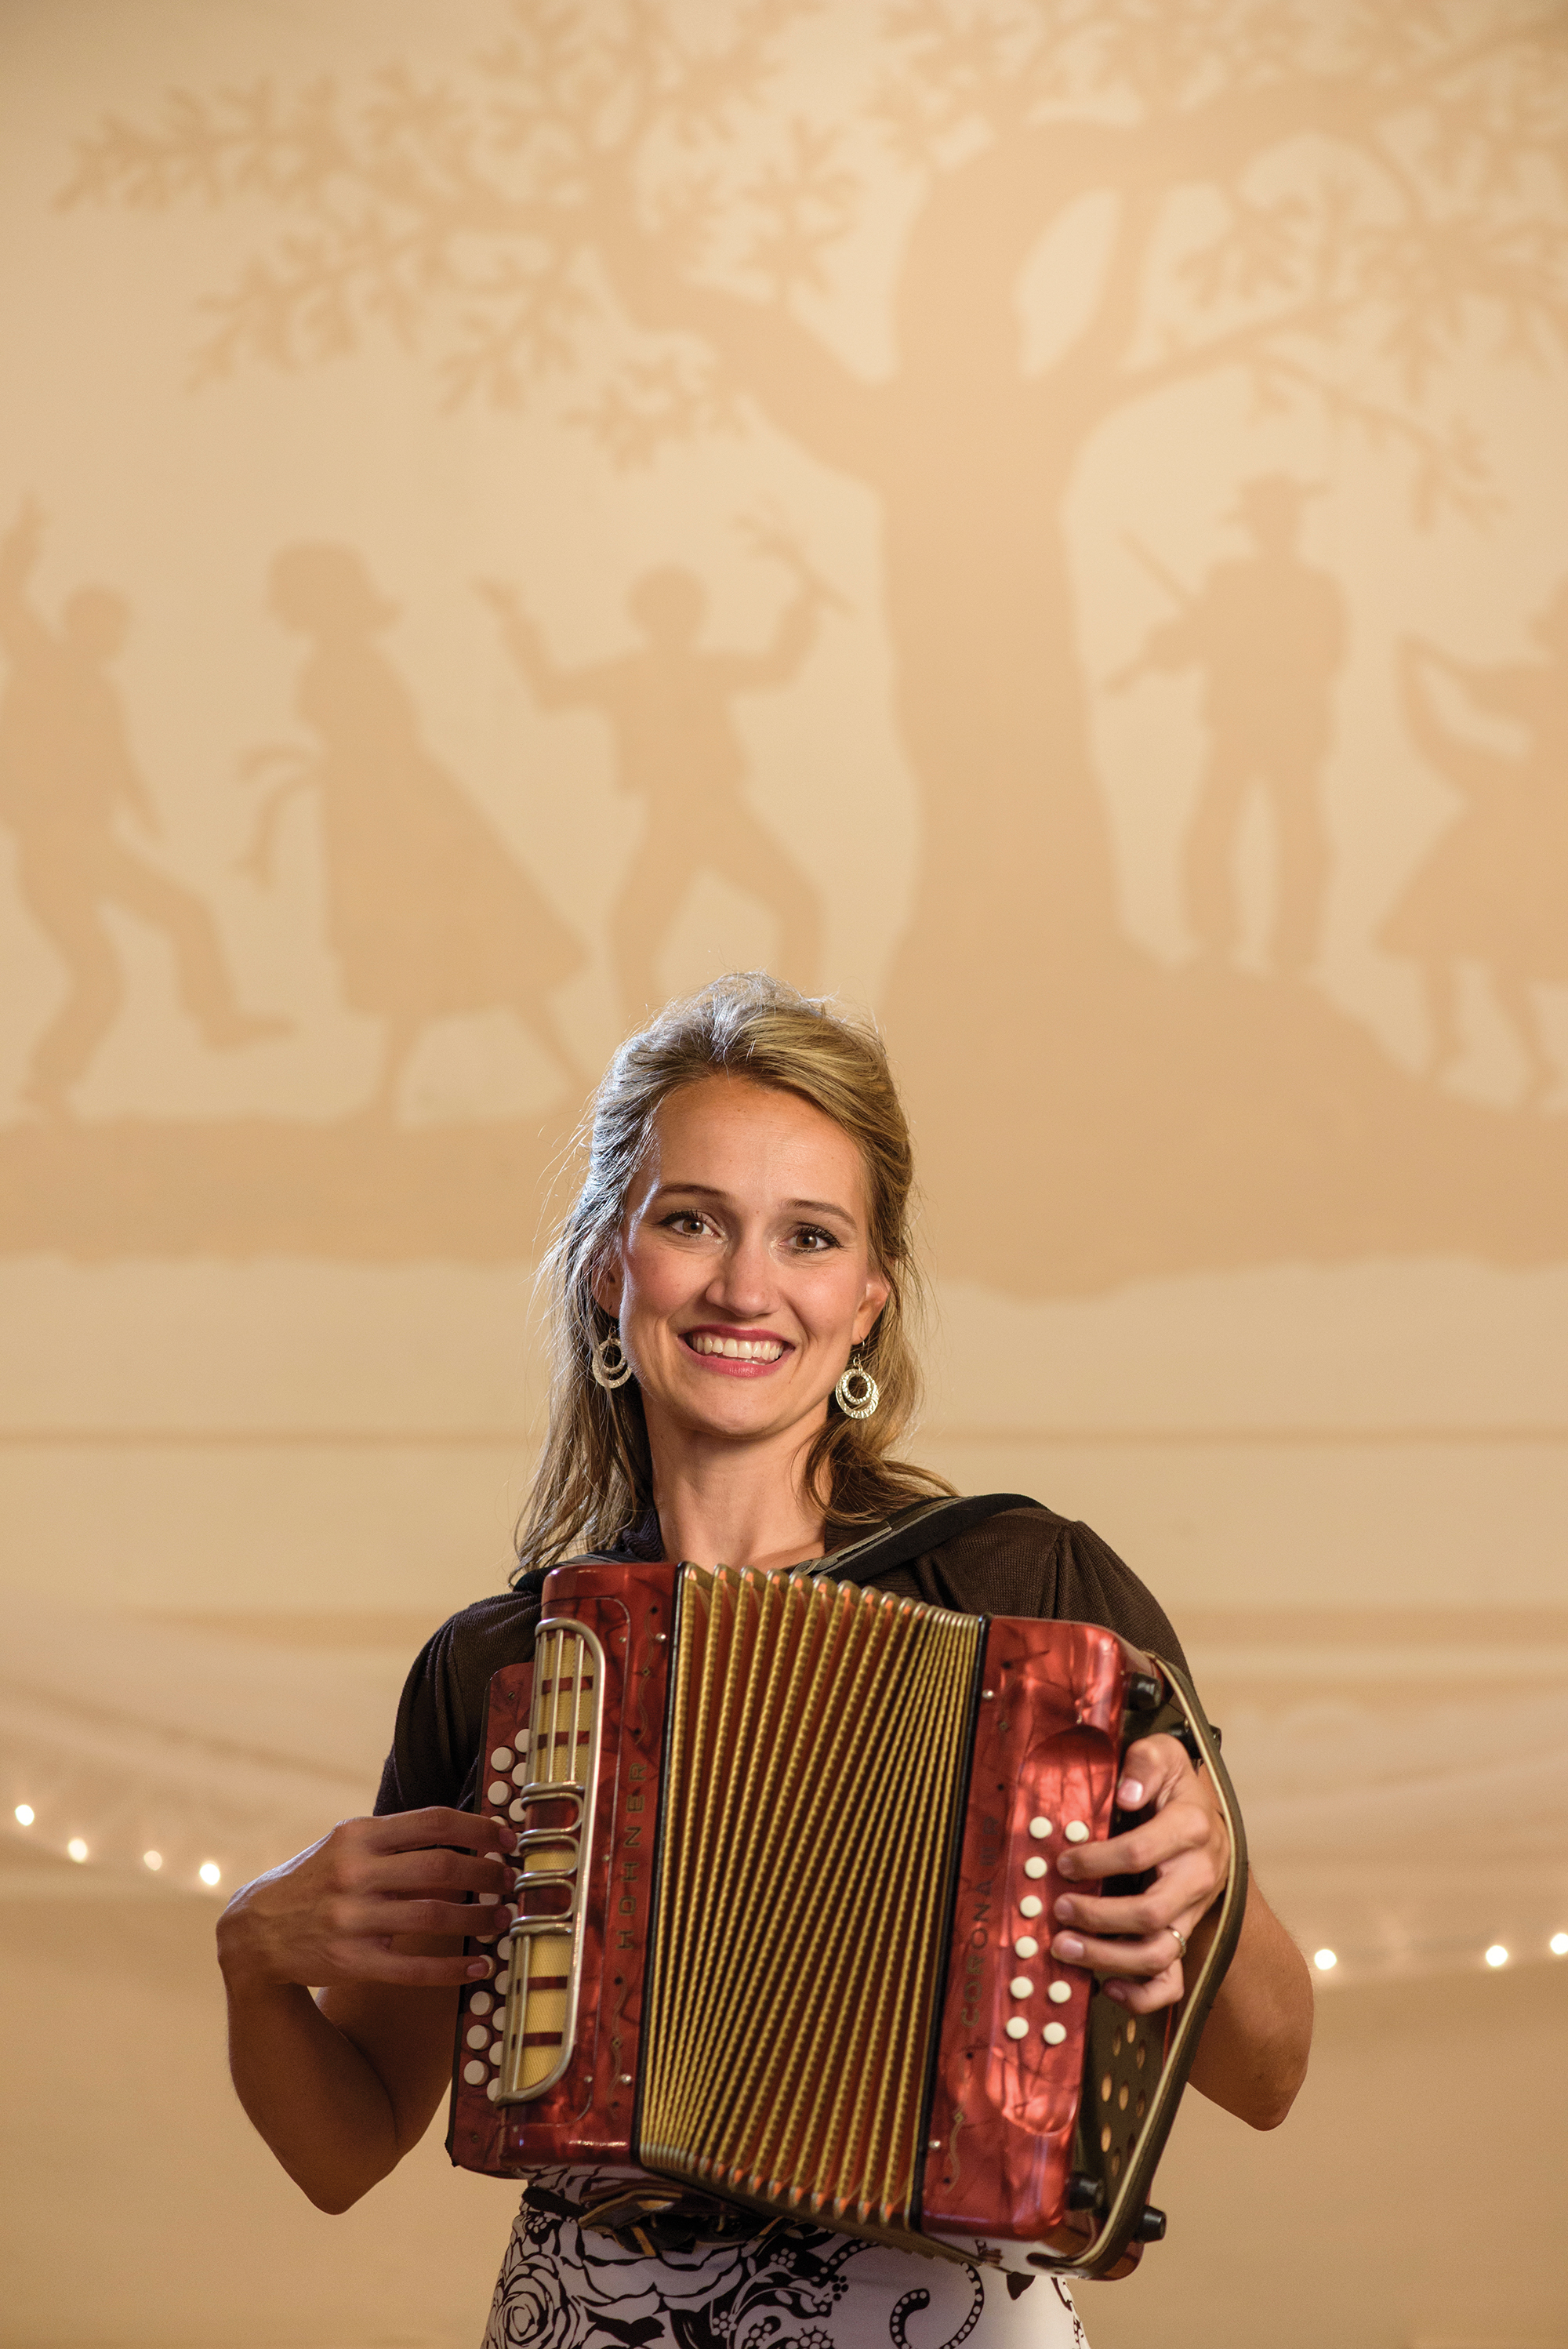 Polka! host Mollie B. poses with her squeezebox